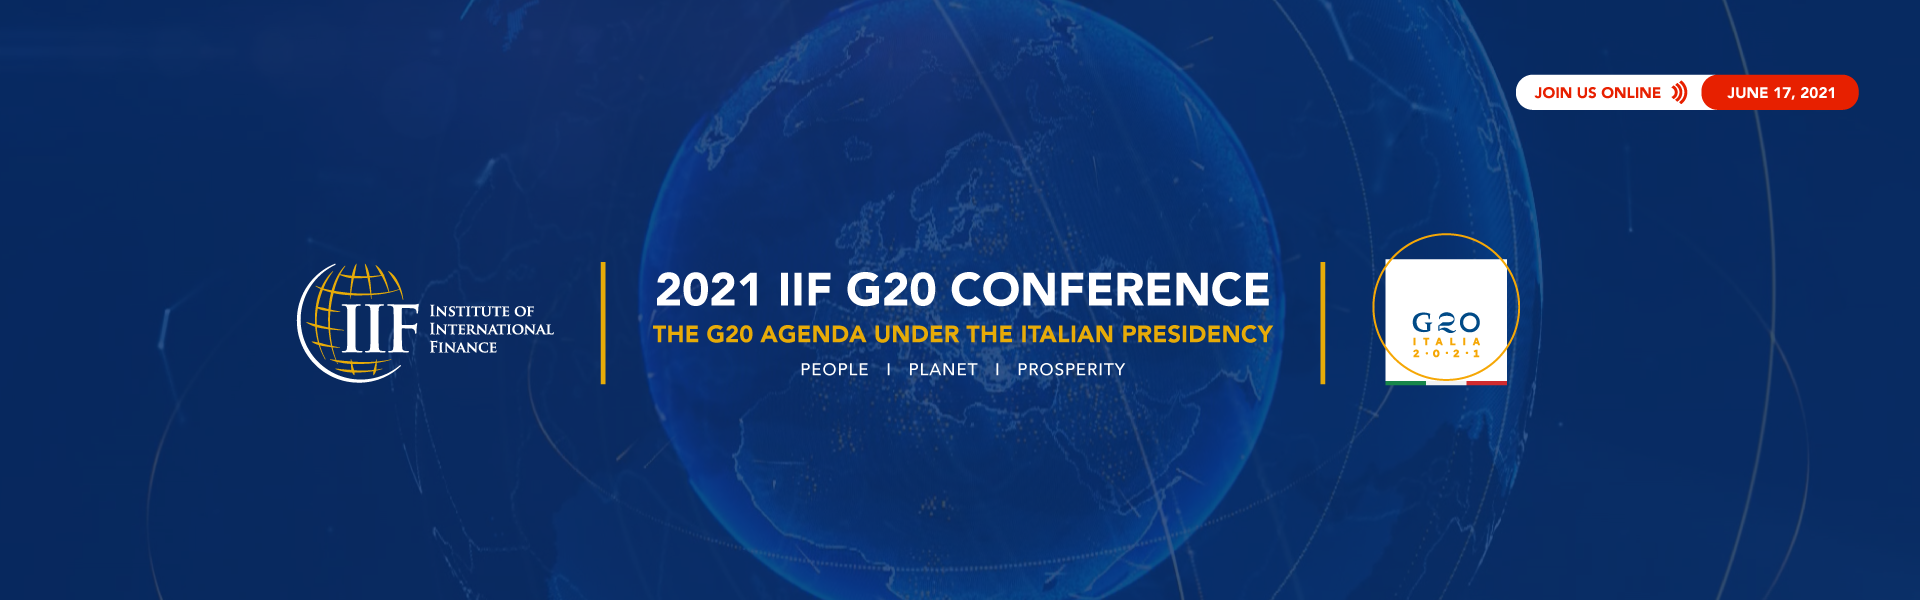 2021 IIF G20 Conference: The G20 Under the Italian Presidency